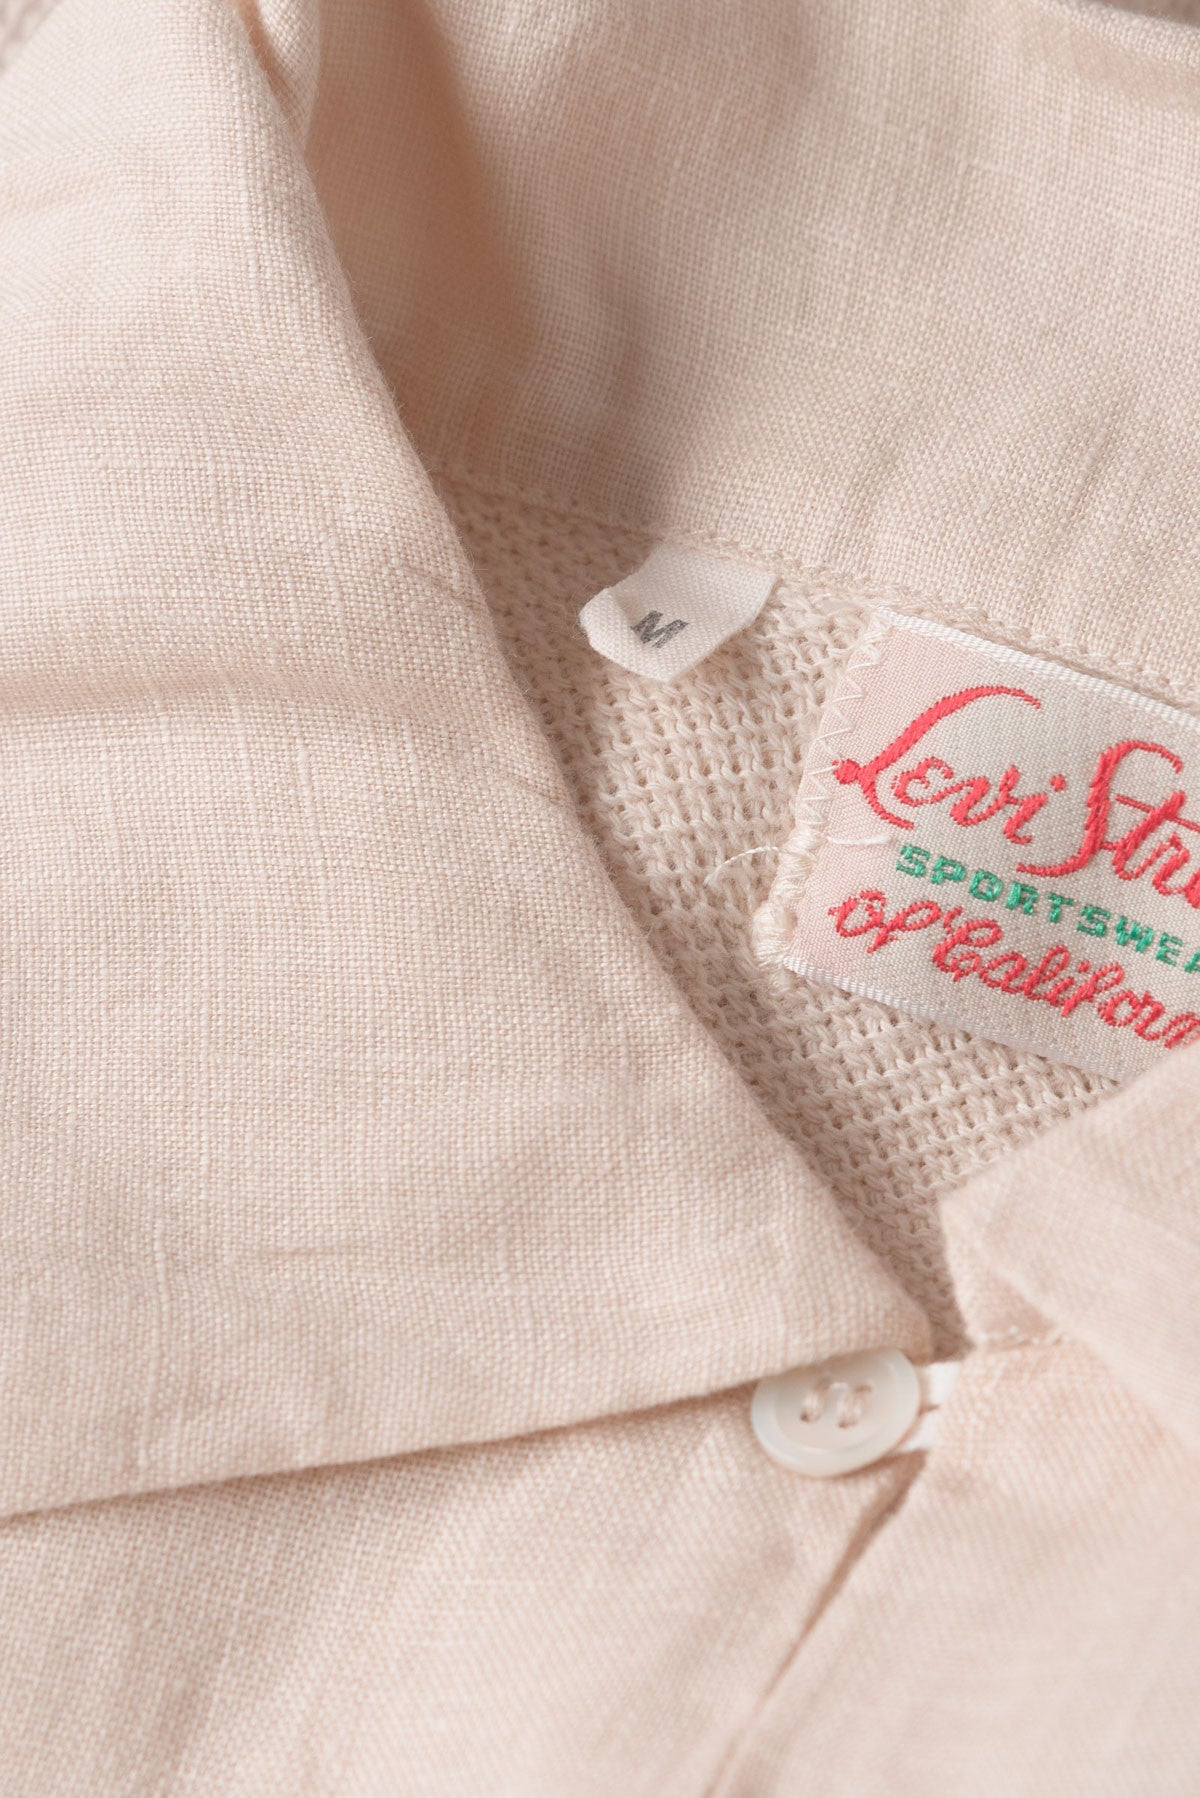 25835f84e99 Levis Vintage 1940's Popover S S Shirt available from Priory